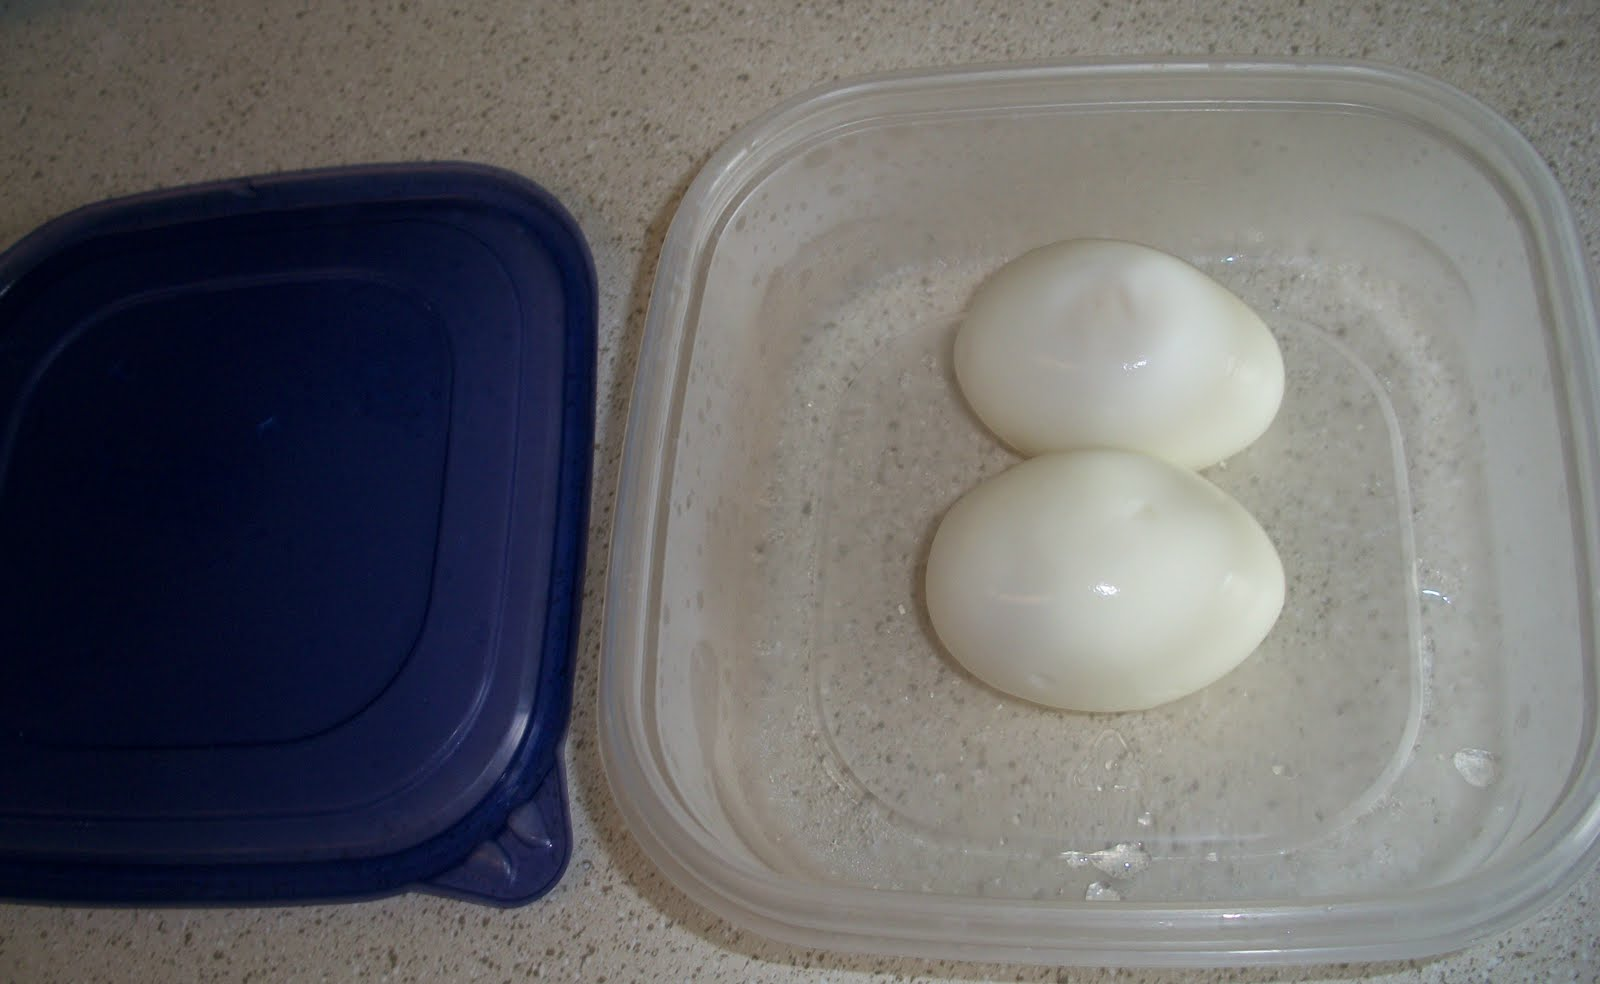 Peeled eggs in an airtight container